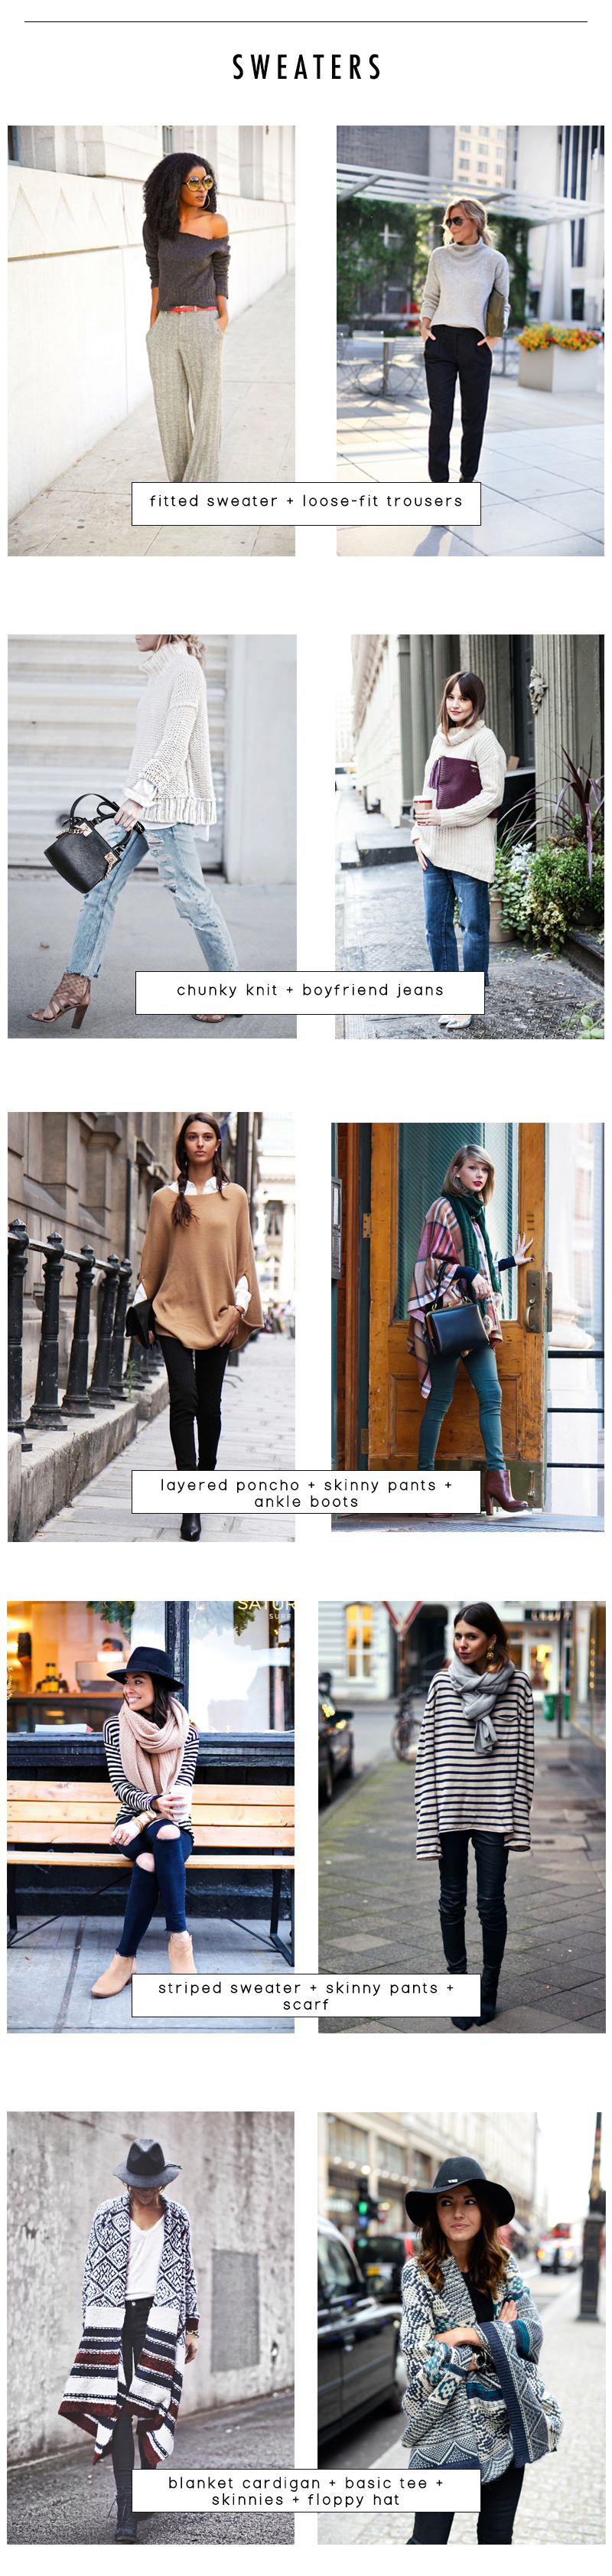 18-outfit-recipes-for-fall-sweaters